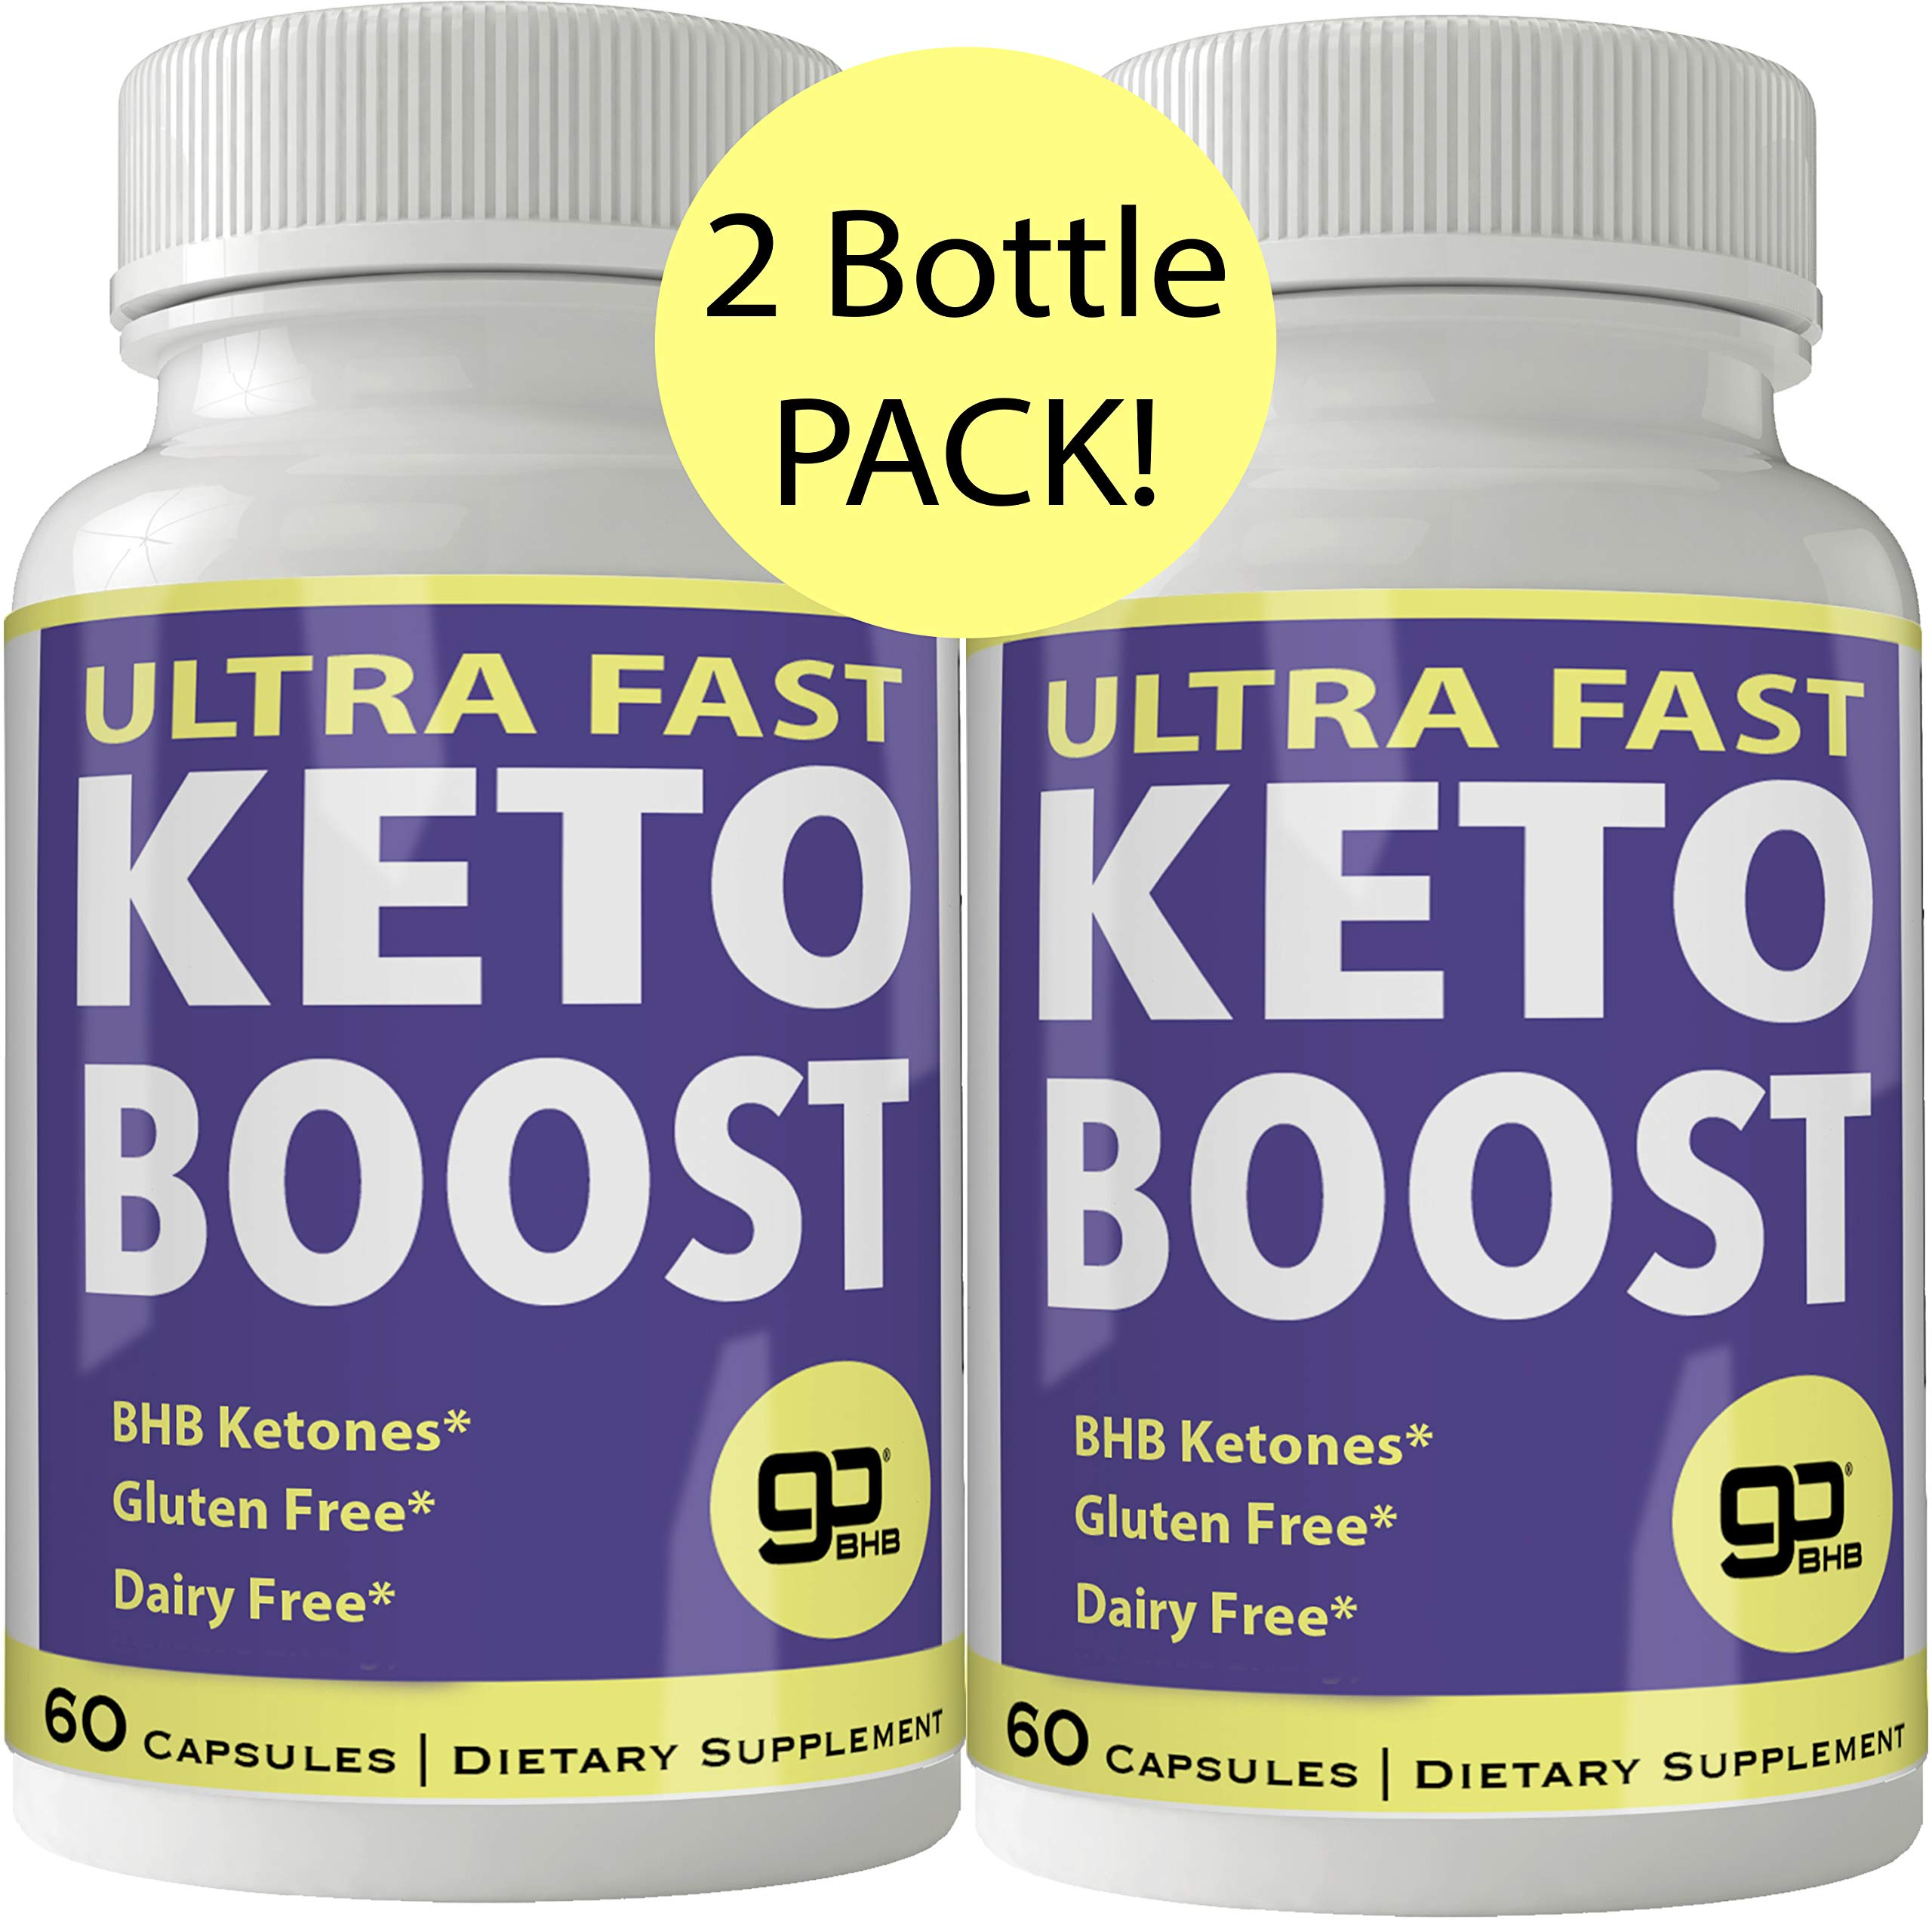 Ultra Fast Keto Boost 2 Bottle Pack Weight Loss Pills with Advanced Natural Ketogenic BHB Burn Fat Supplement Formula 800MG Capsules by nutra4health LLC